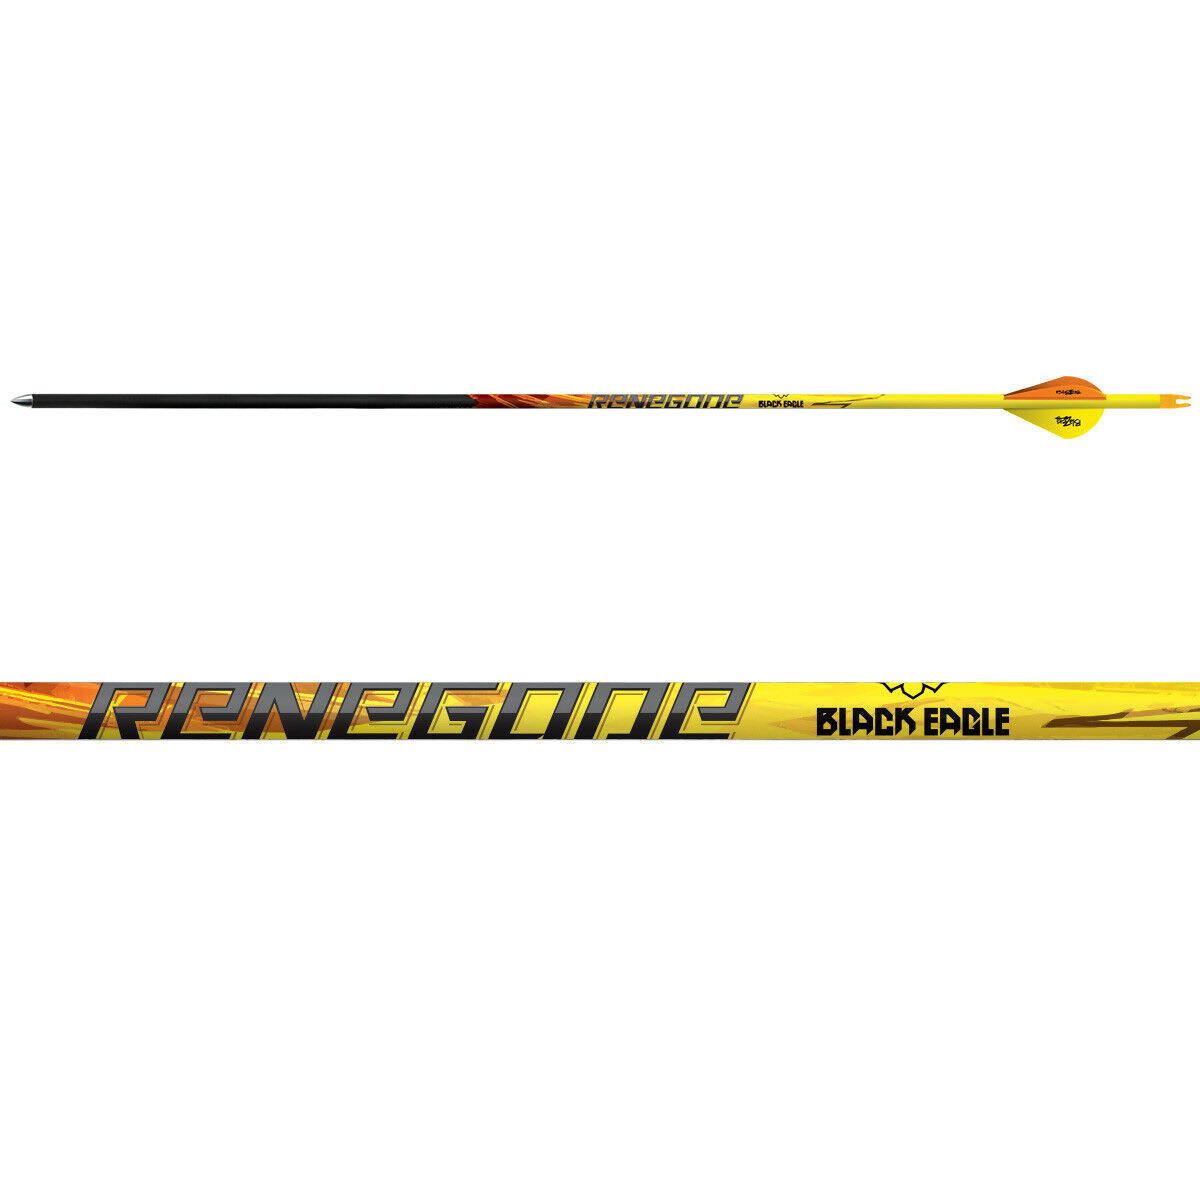 Black Eagle Renegade Fletched Arrows - 6-Pack